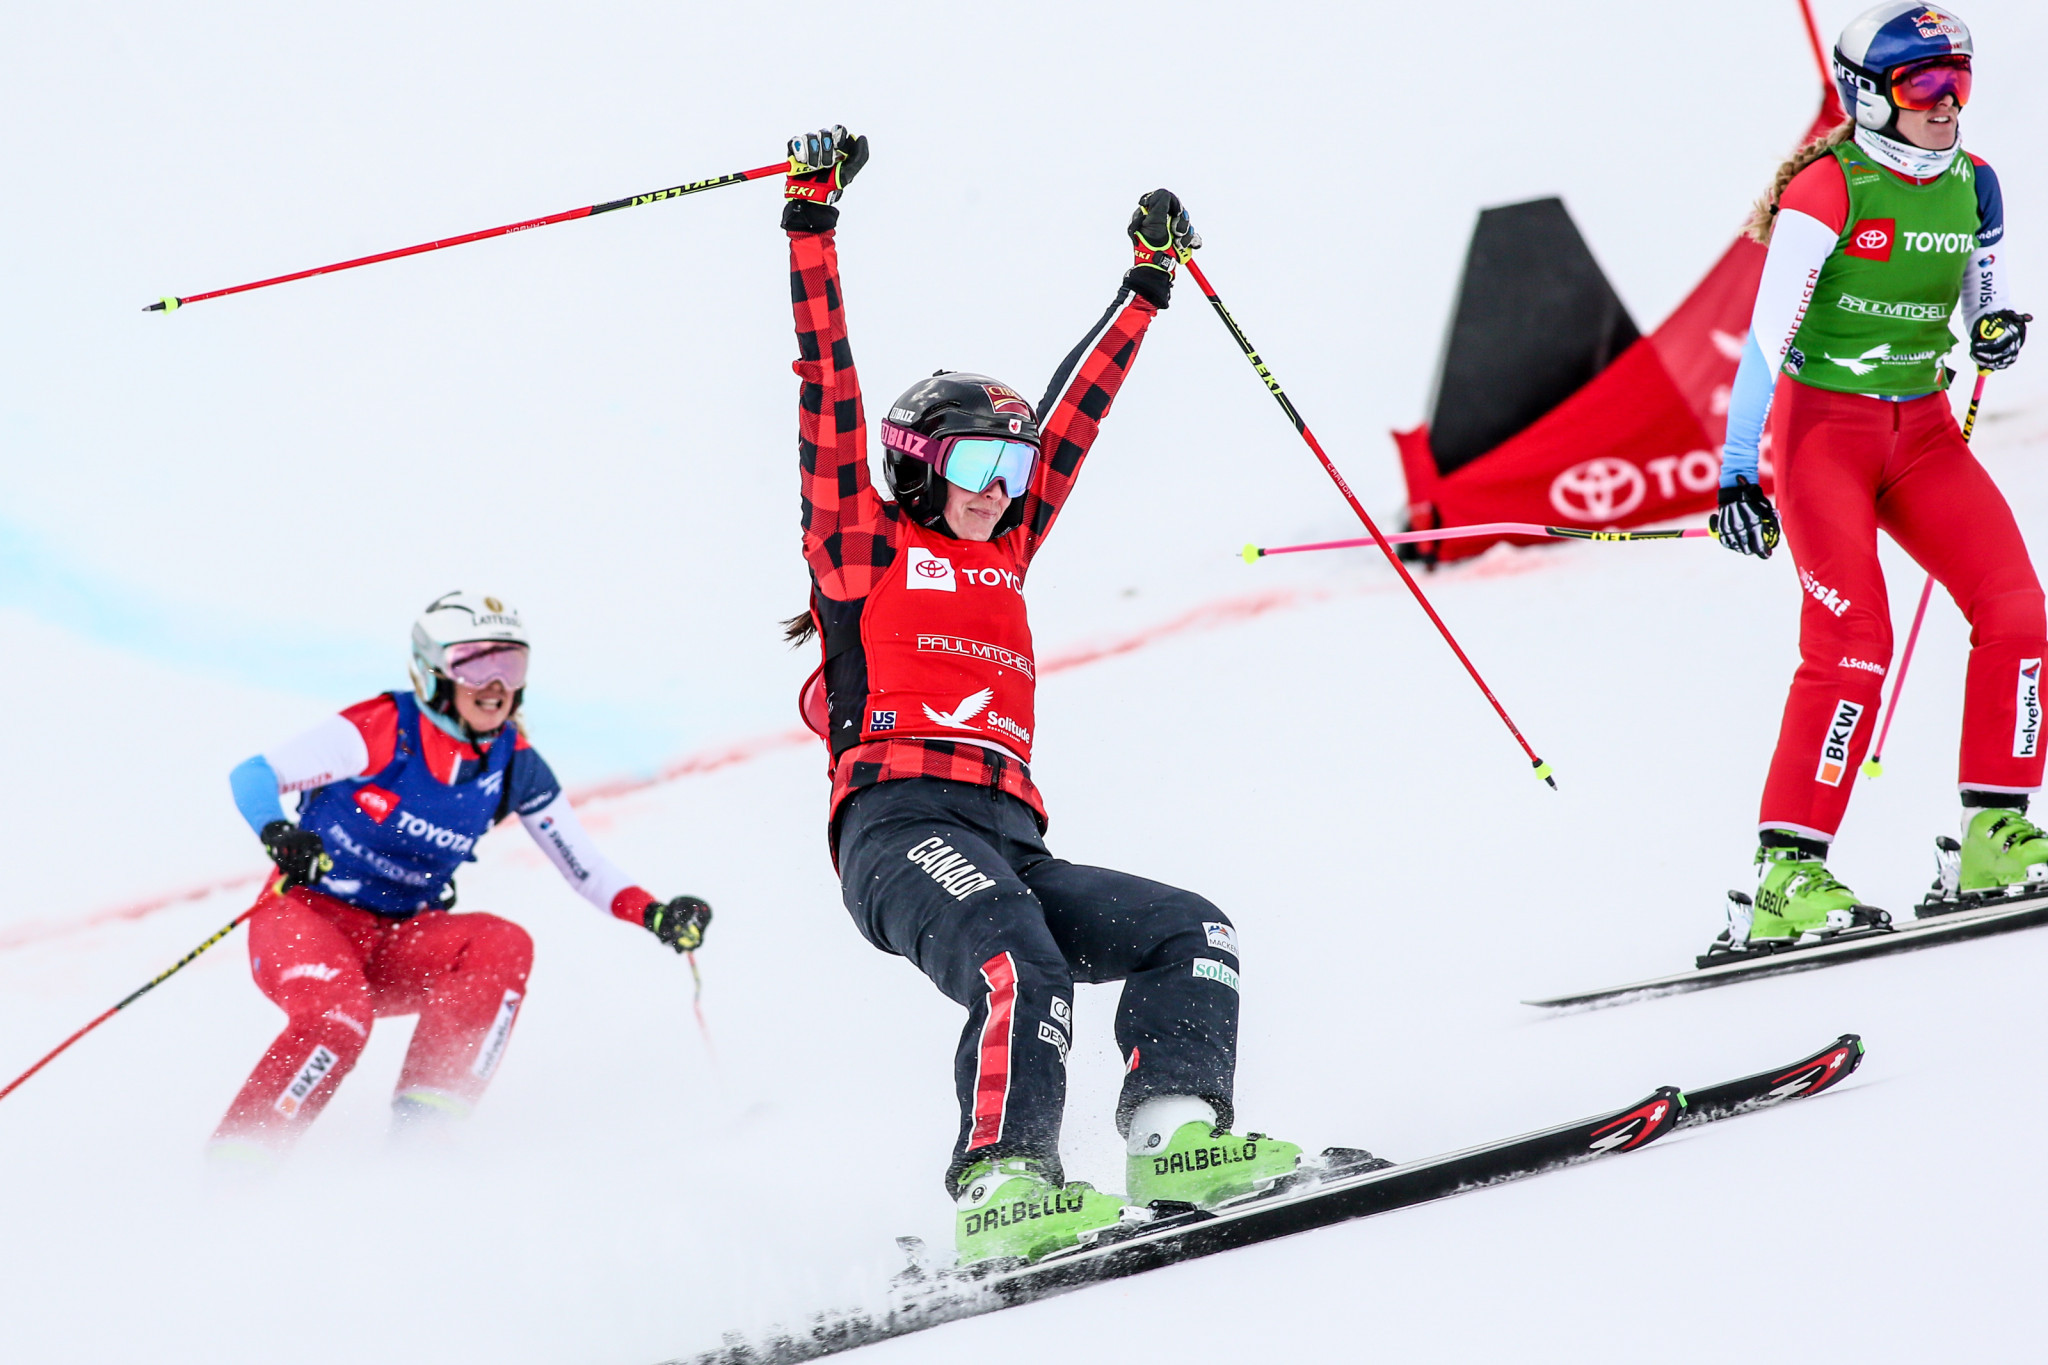 World champion Marielle Thompson headlines the Canadian ski cross team nominations ©Getty Images